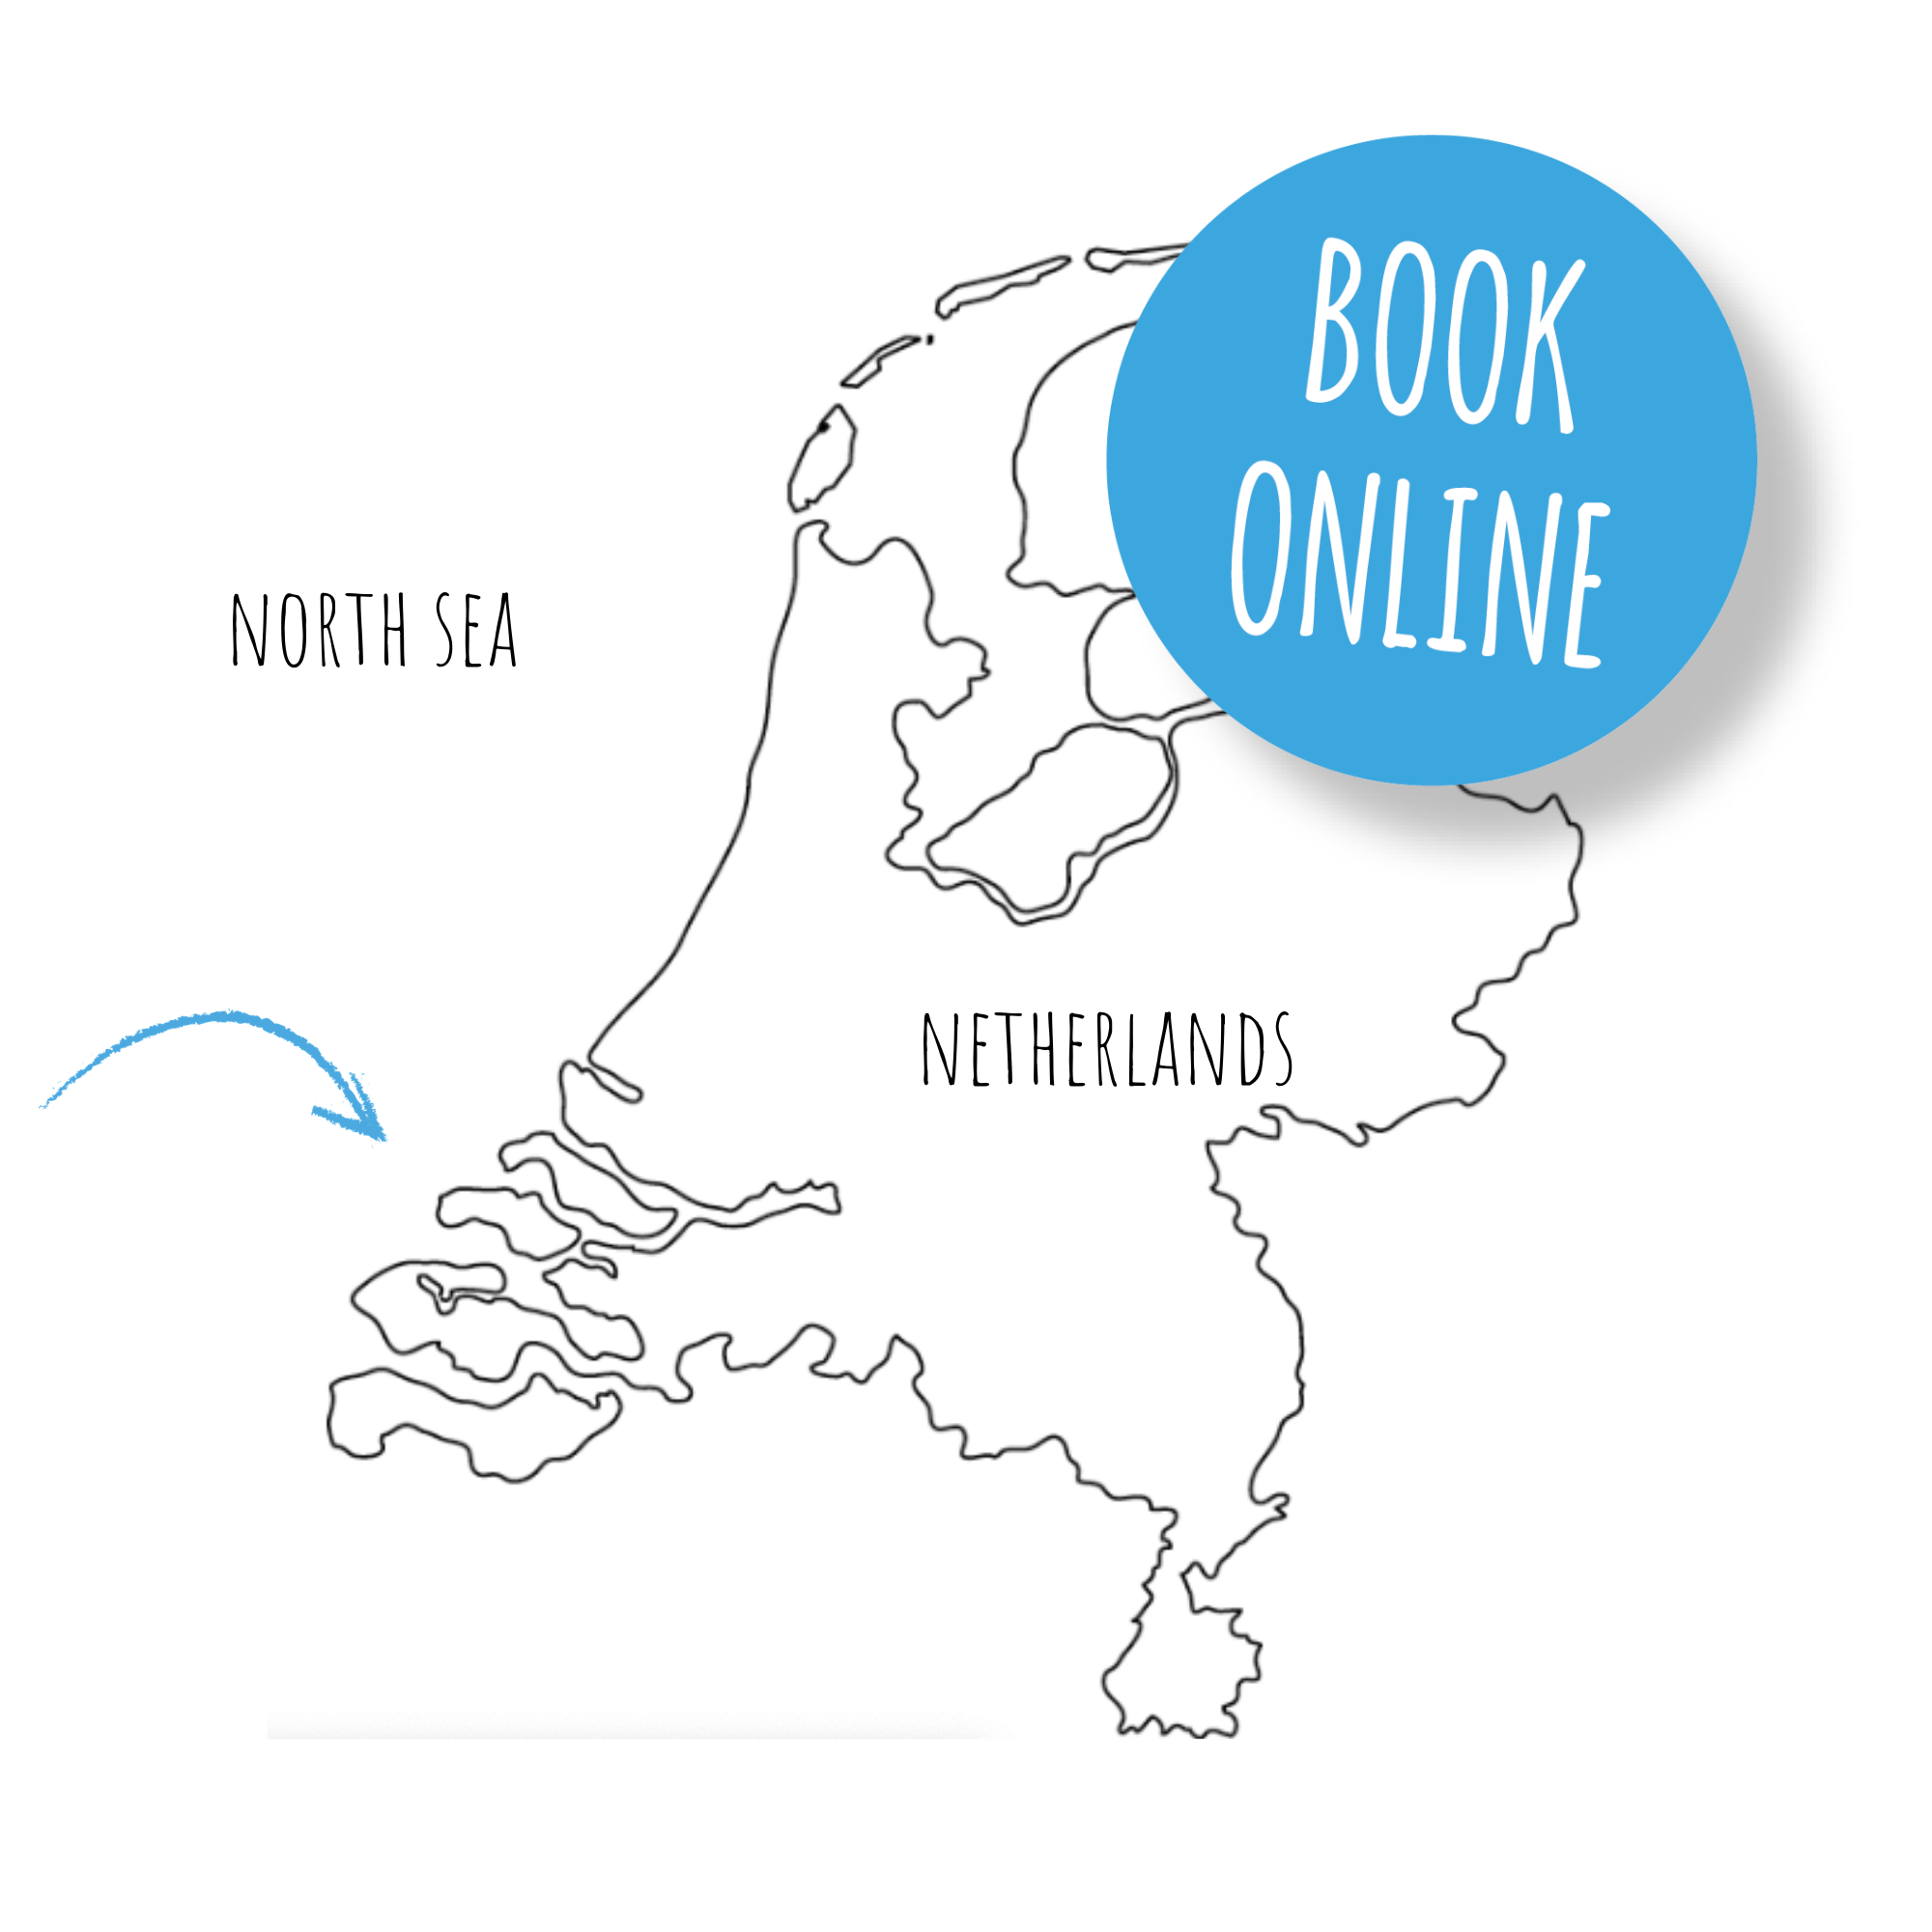 HOLLAND CRUISE 2020: John Chick - 9 day Sail in the Inland Waterways of Holland 2nd - 10th May